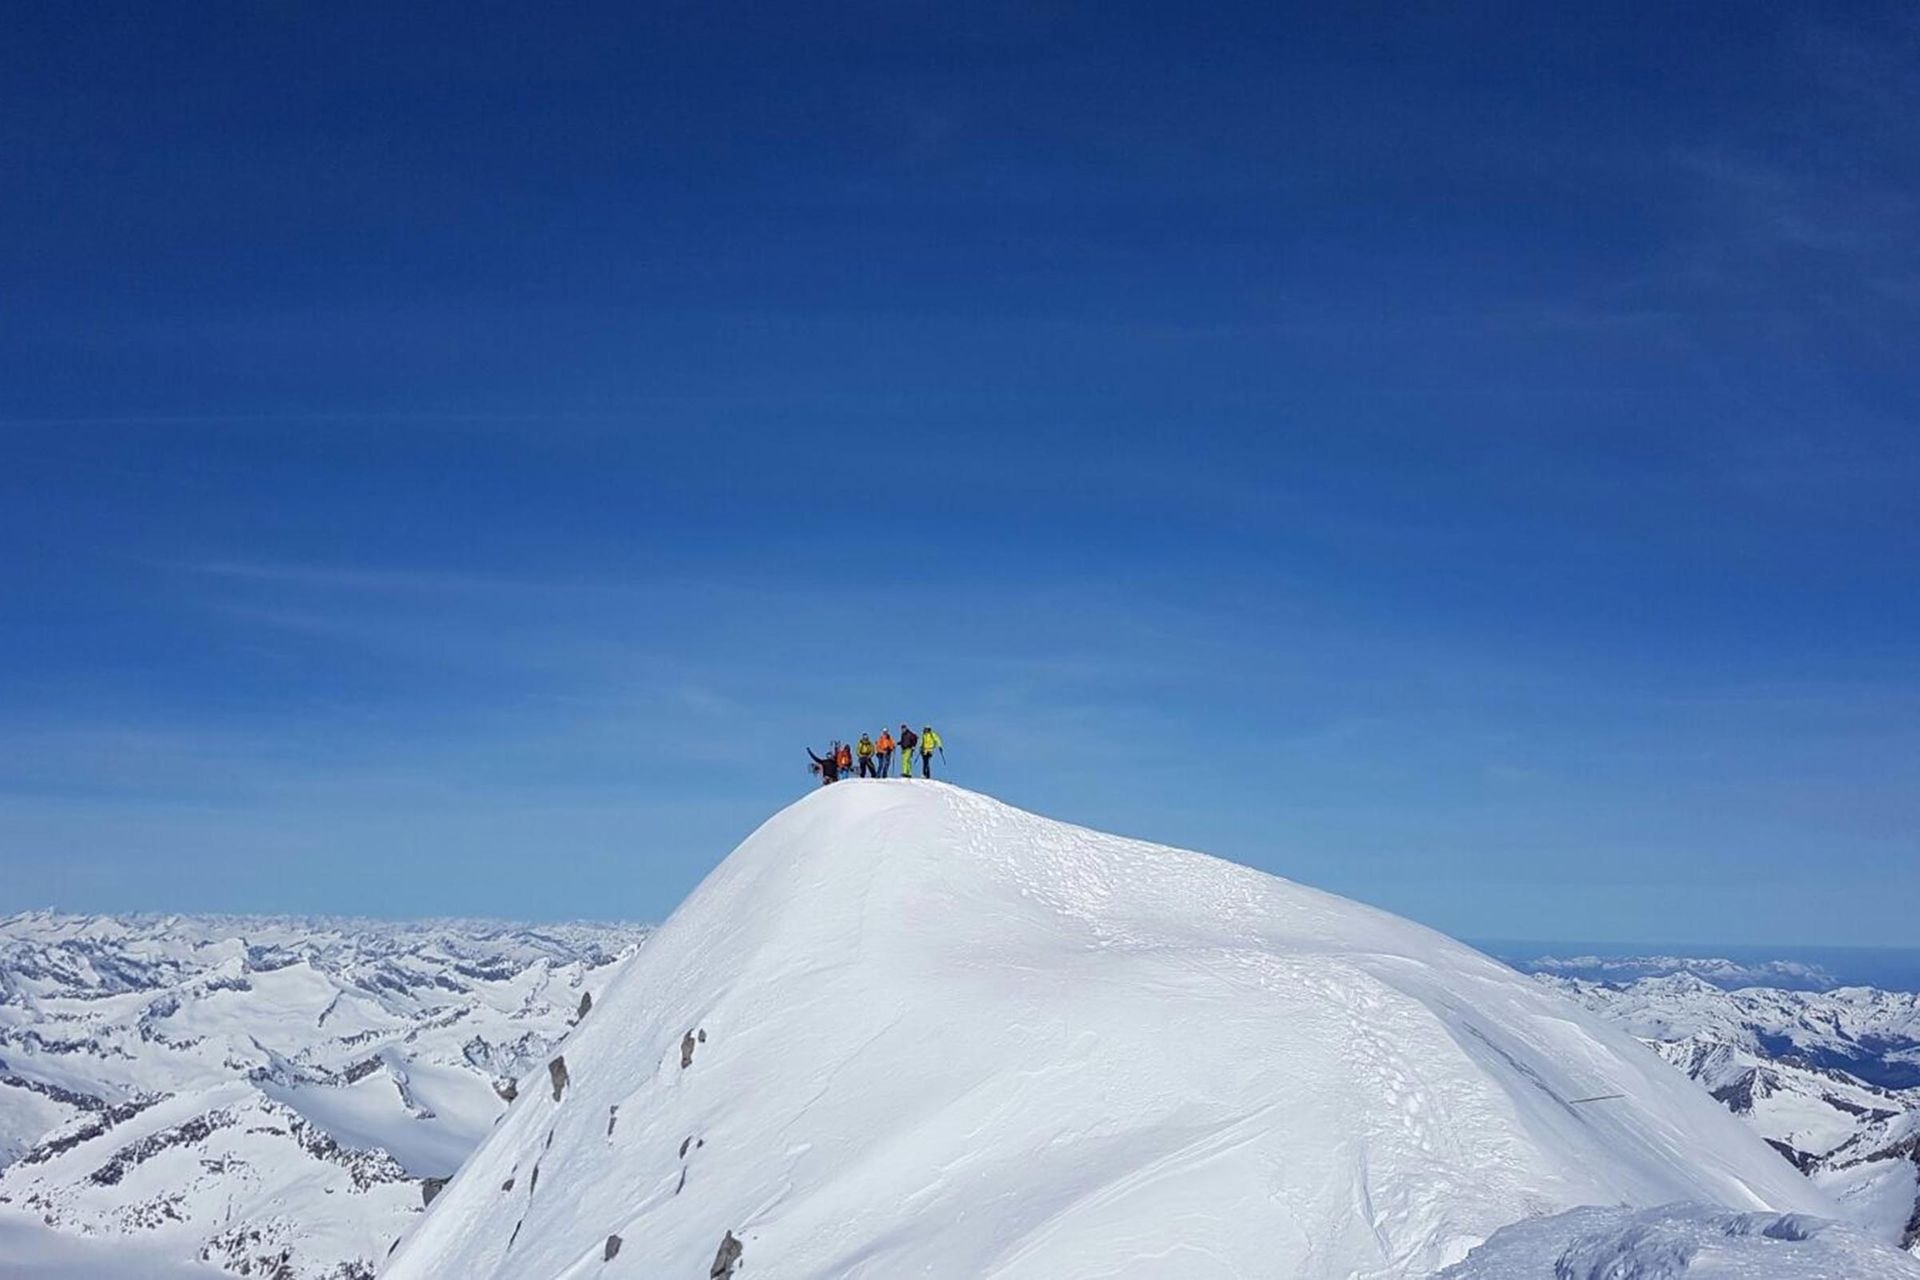 Snowshoeing in Zillertal Zillertal, Tyrol, Austria #37a14ad2-42bc-45ca-96ce-37c51ca669cc